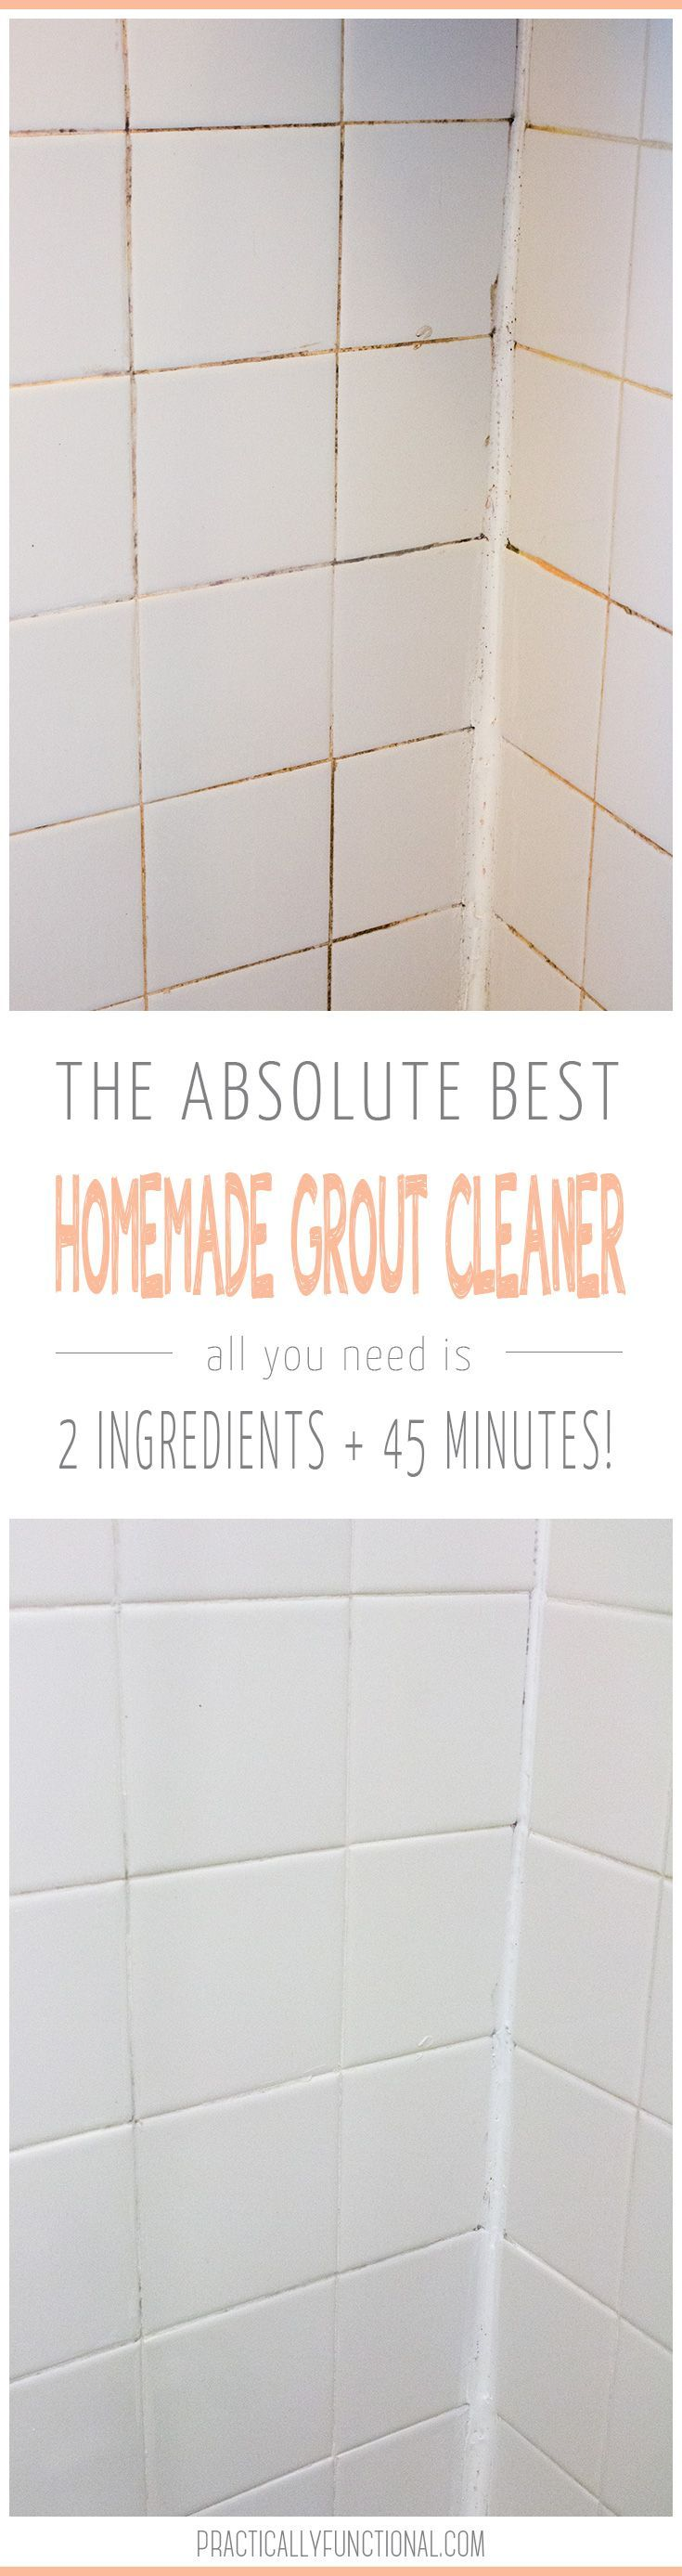 25 Best Ideas About Cleaning Bathroom Grout On Pinterest Clean Grout Clean Bathroom Grout